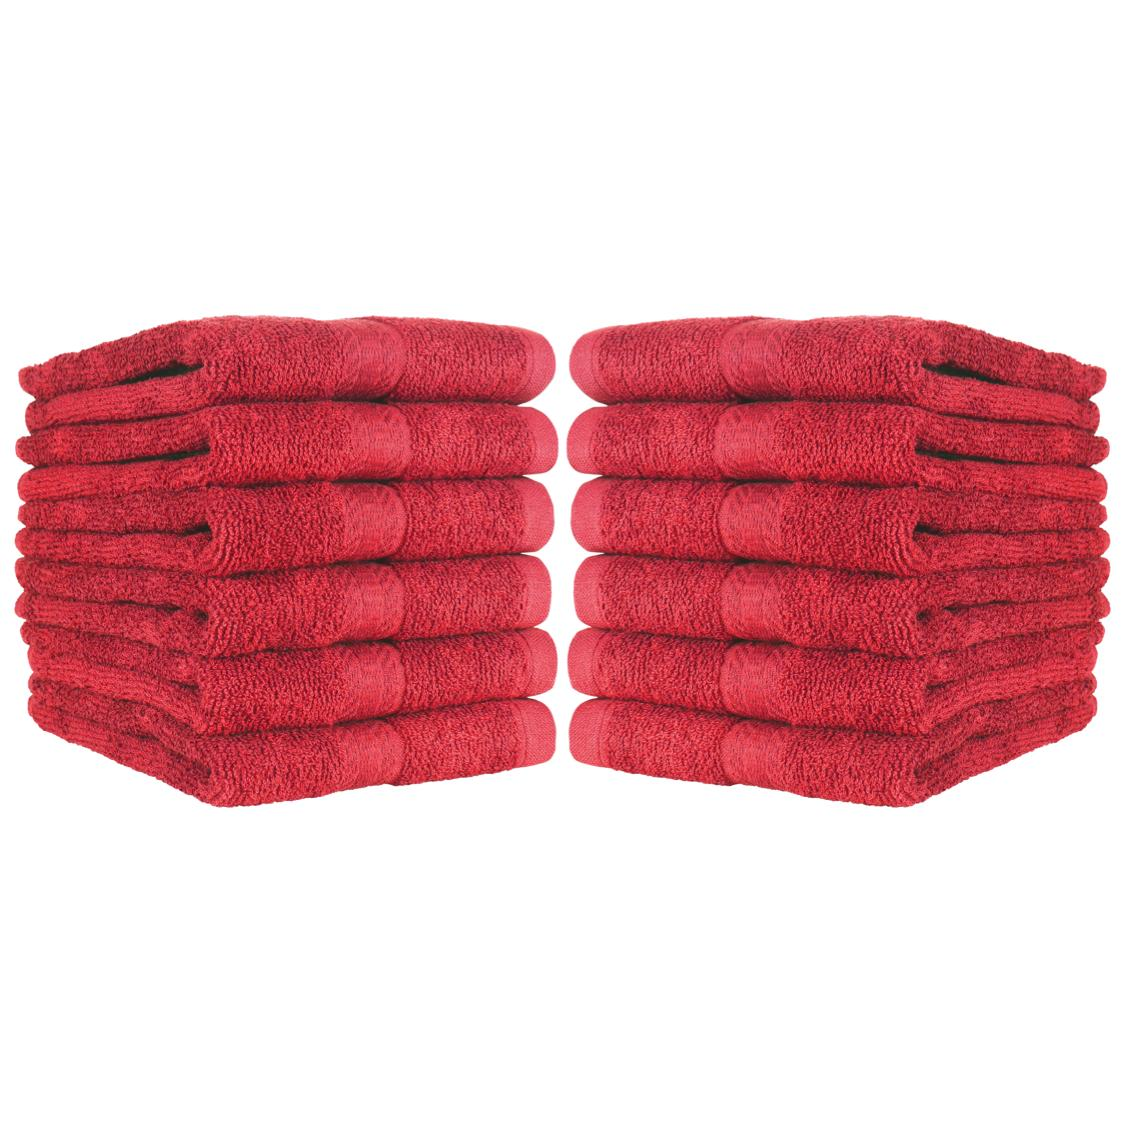 Hand Towels 100% Ring-Spun 27 Color